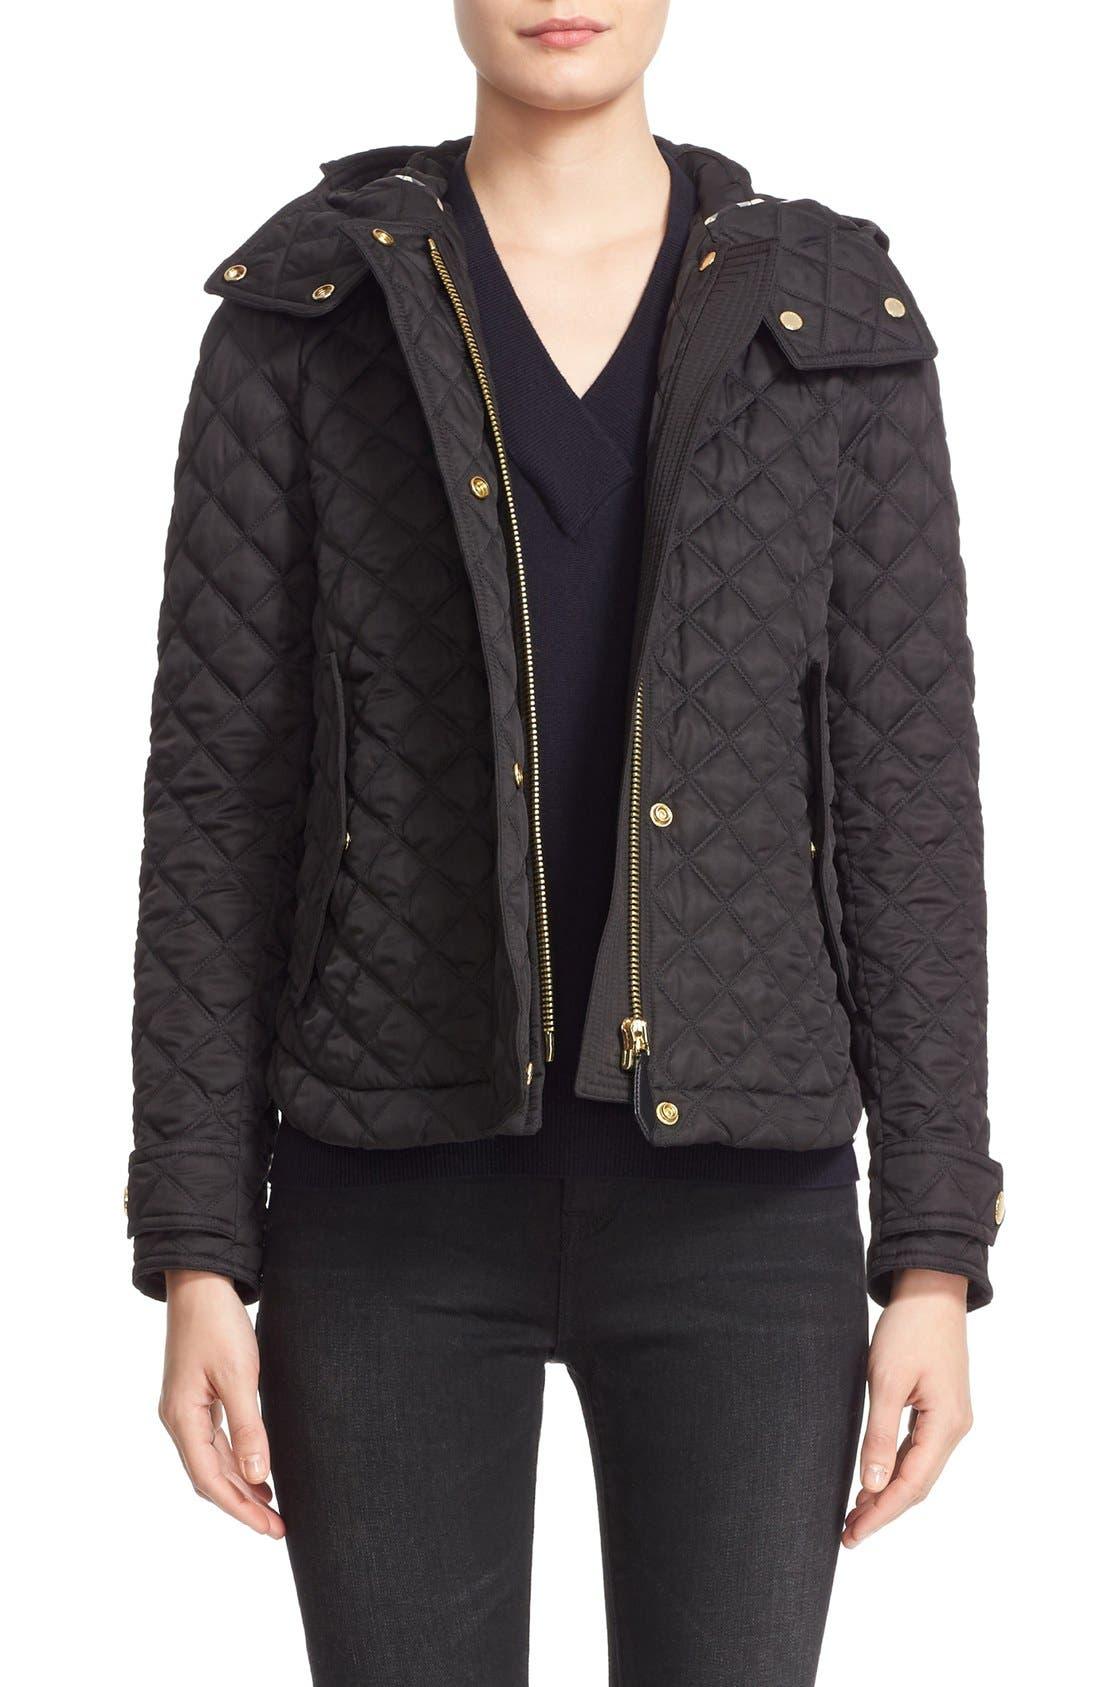 BURBERRY BRIT, 'Leightonbury' Quilted Hooded Jacket, Main thumbnail 1, color, 001